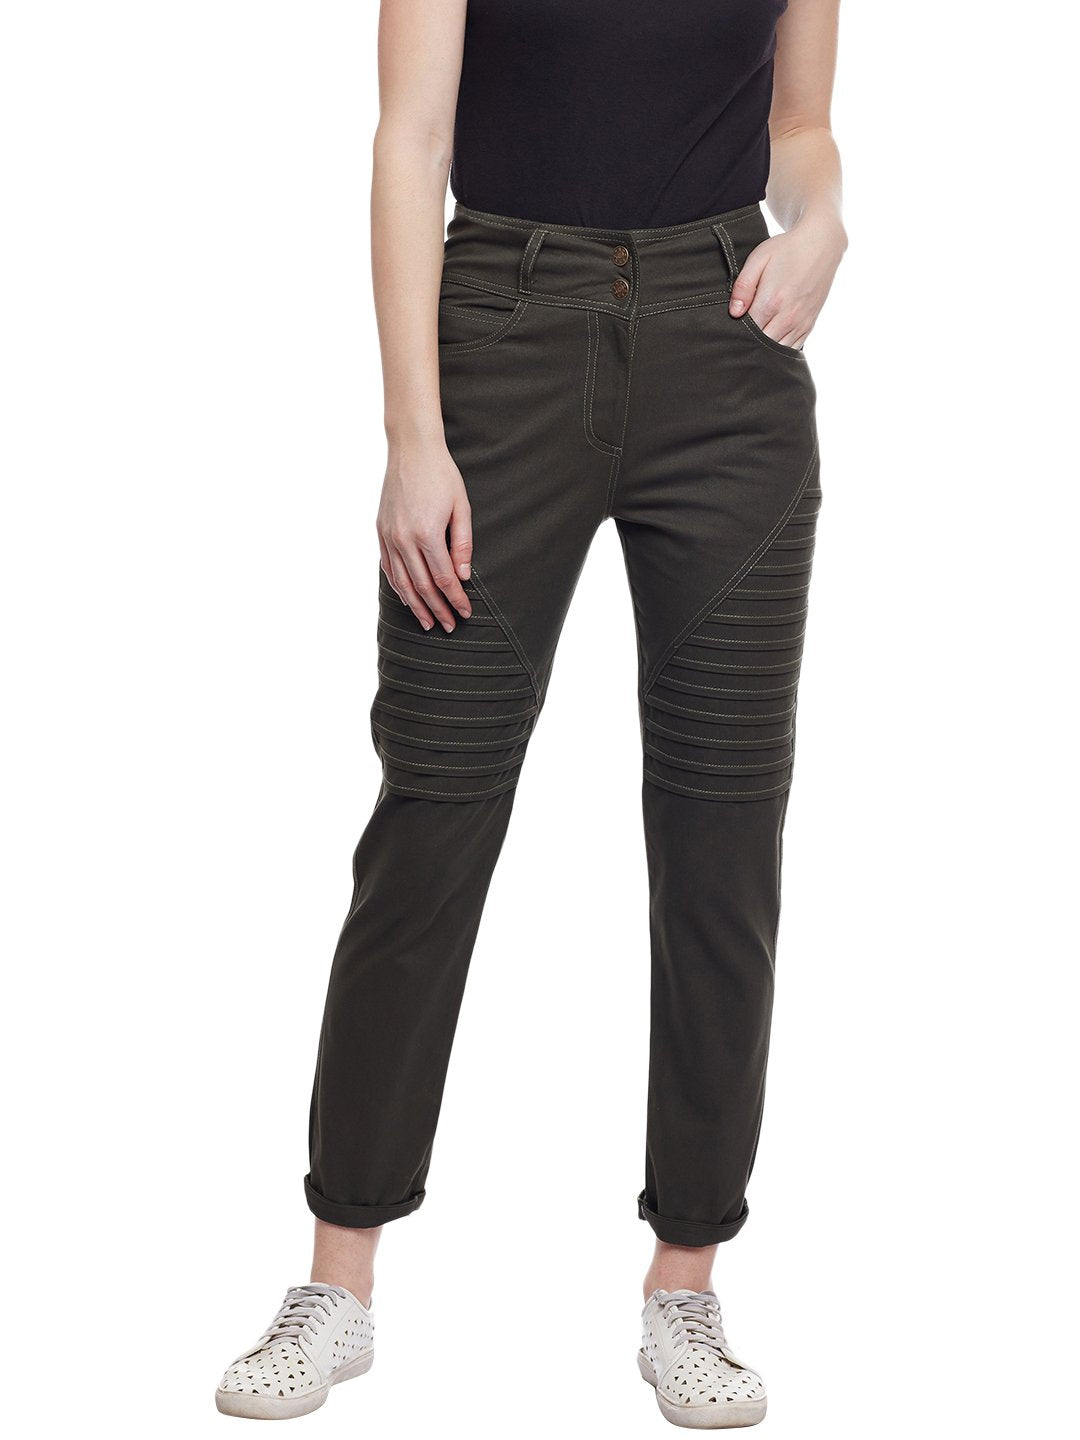 Castle Olive Cotton Spandex Pant